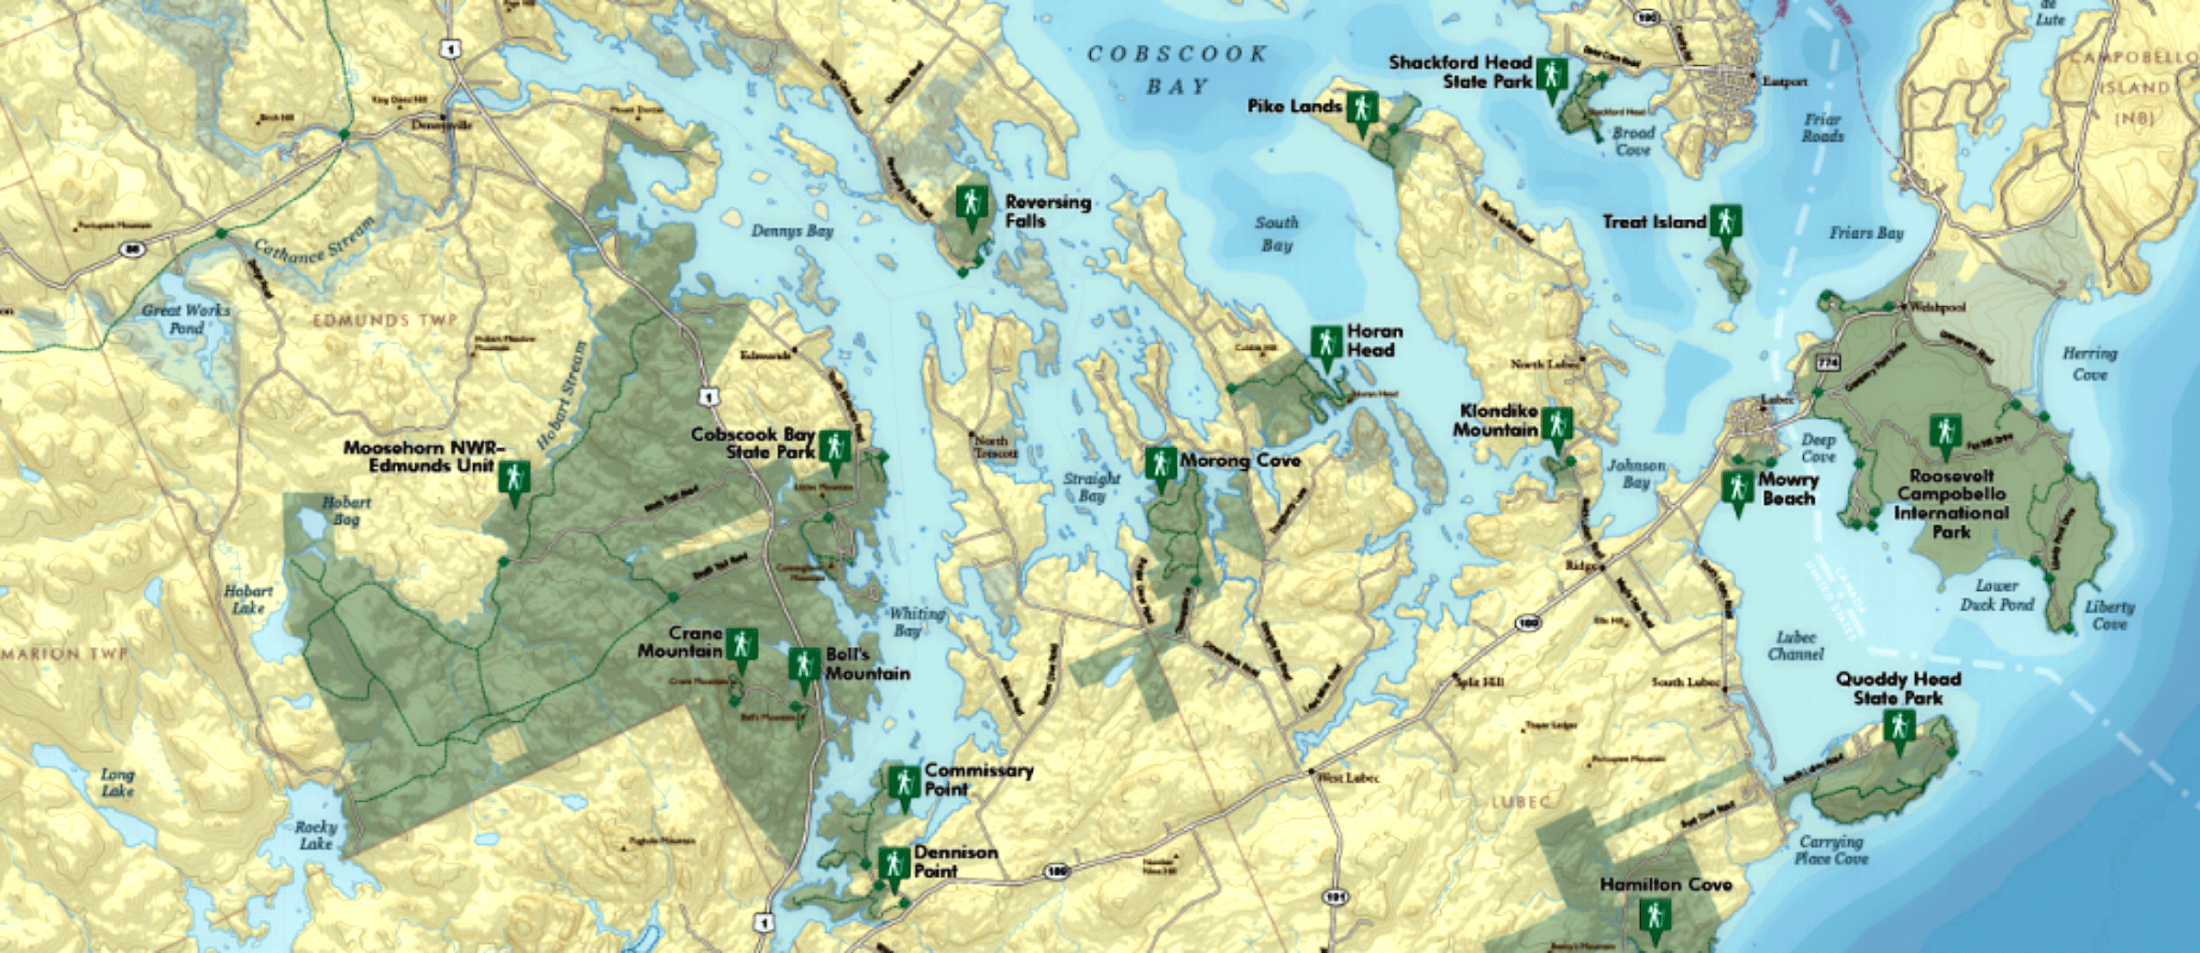 mcht-cobscook-trail-map-1024x611-hero